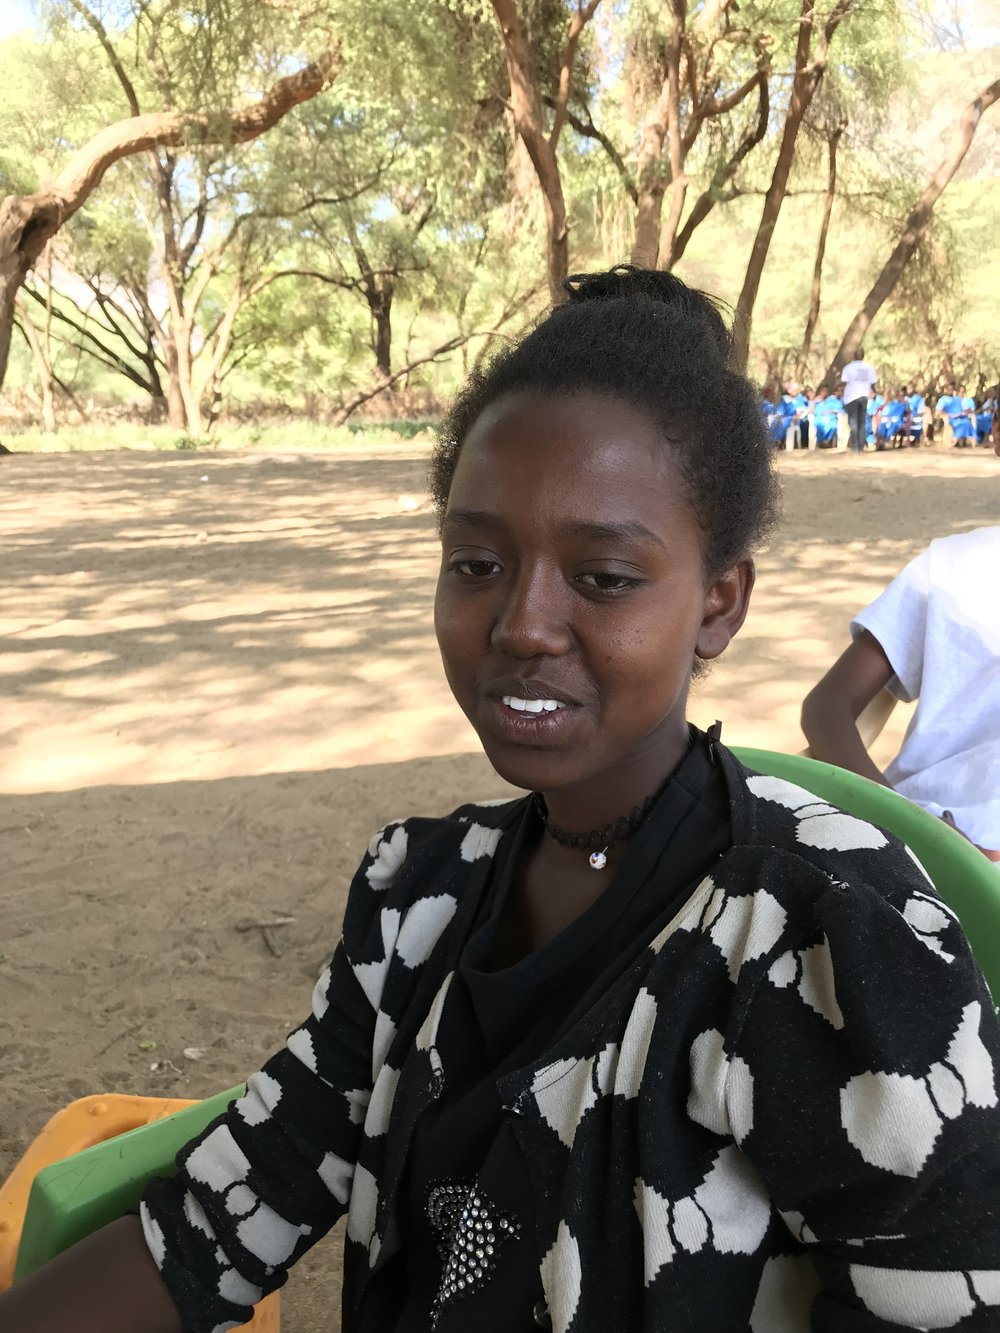 Veronica - Veronica lives with her parents, two brother and four sisters. She is grateful to be one of three educated children in her family. Veronica attends Chogoria Girls Secondary School in Meru County. She shared what she learned in the workshop with others, wanting them to know about drug use, FGM and the importance of education.